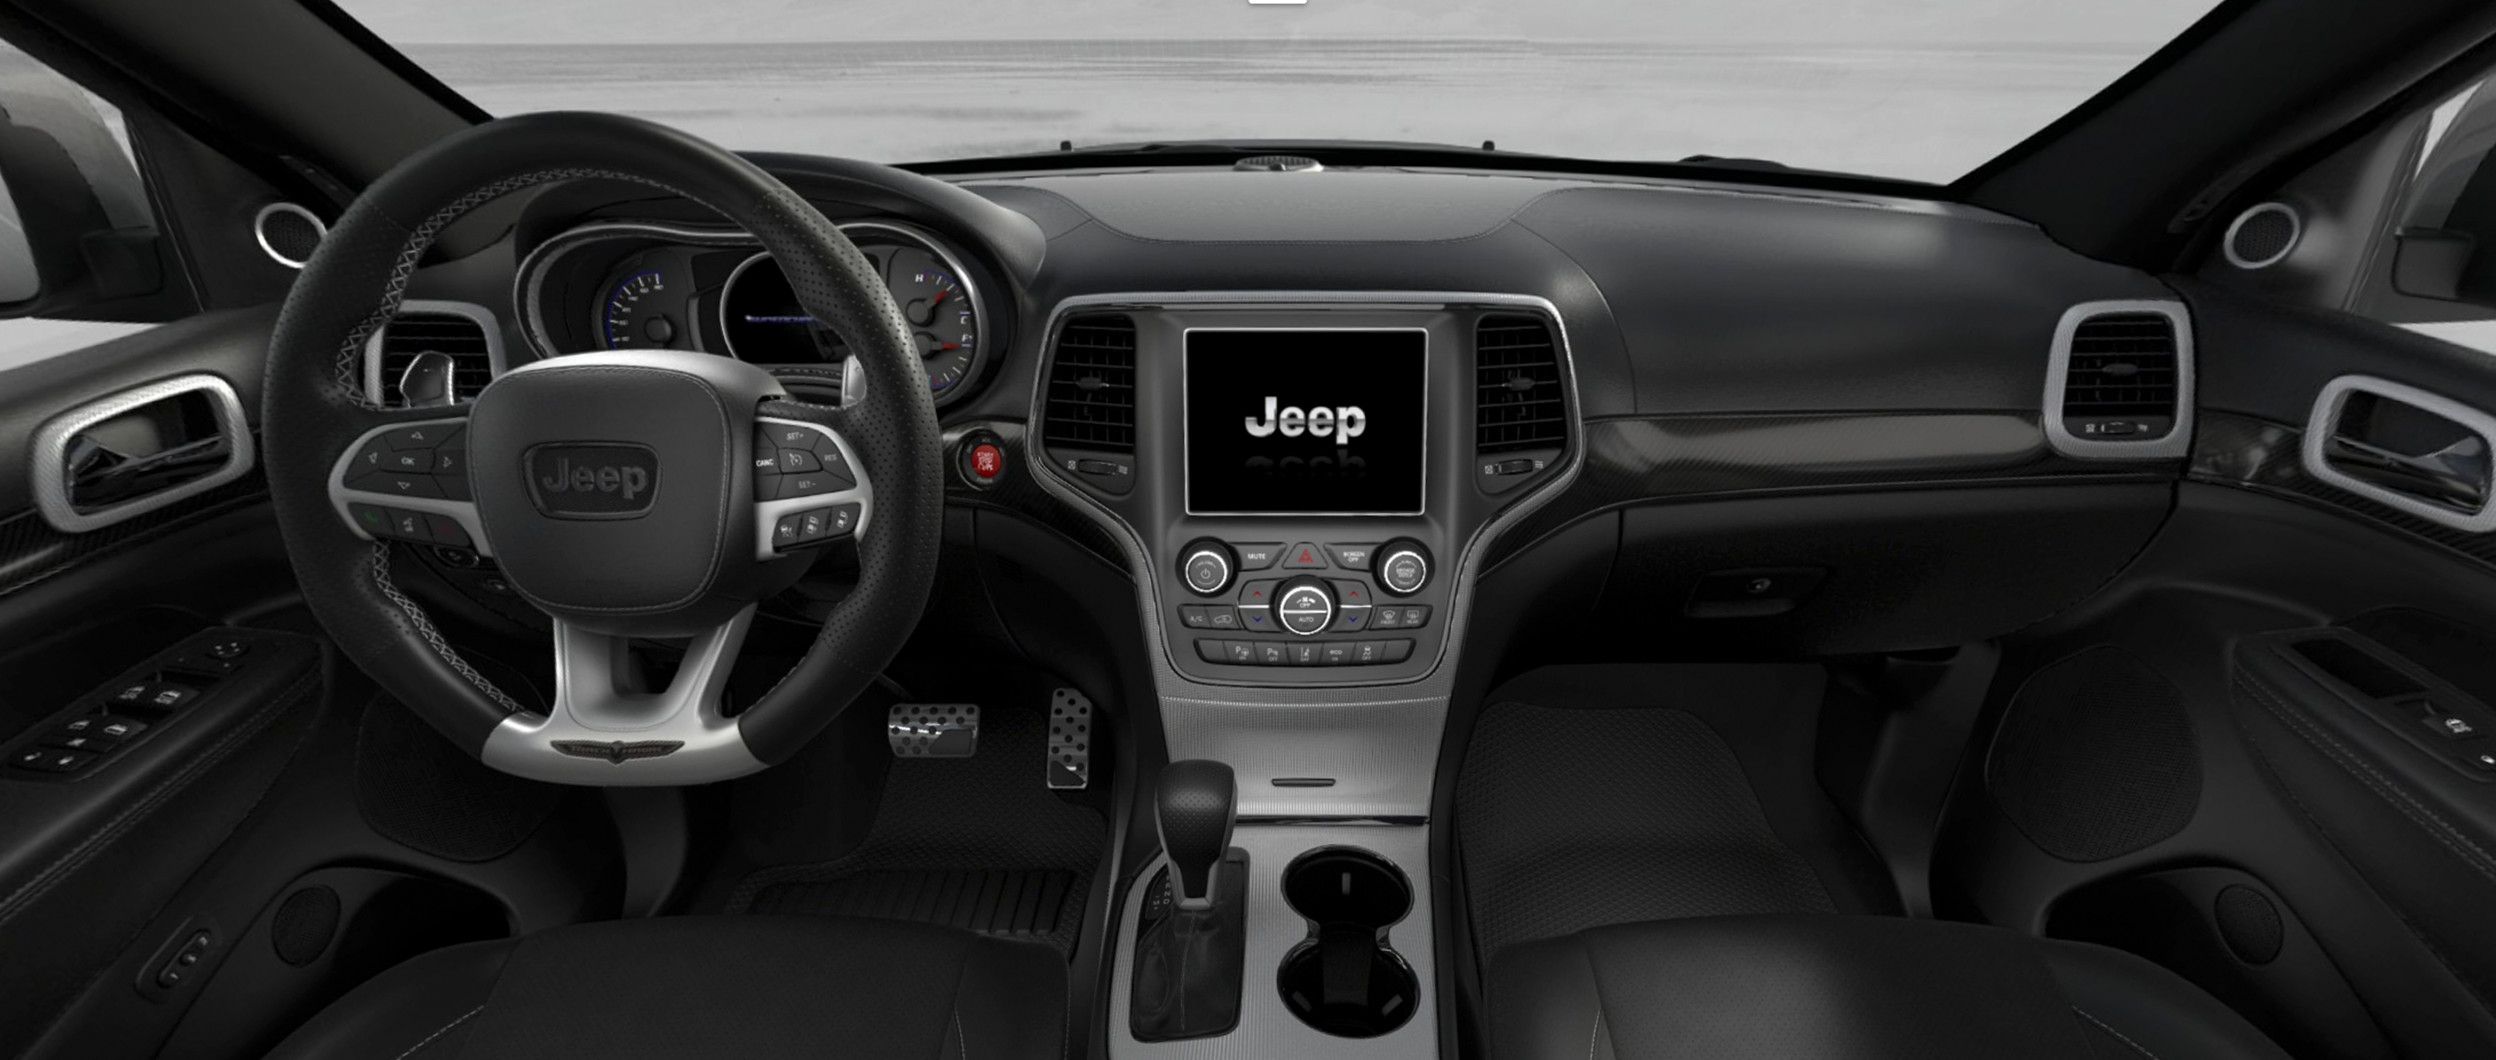 2019 Jeep Grand Cherokee Most Awarded Suv Ever Jeep Canada